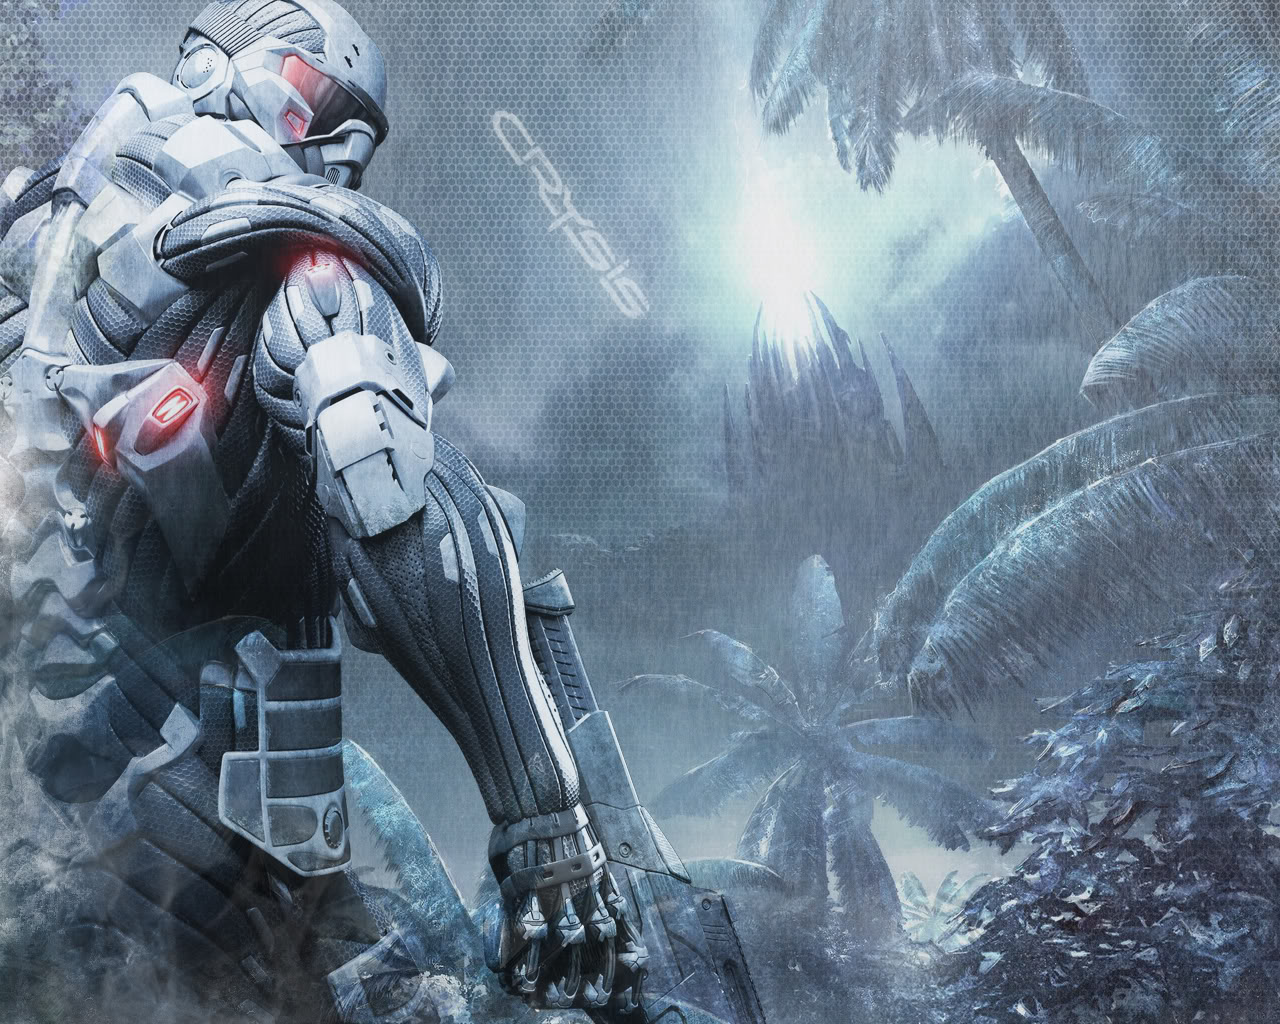 Crysis Warhead Hd Wallpaper Hd - Best Game Wallpapers For Android , HD Wallpaper & Backgrounds